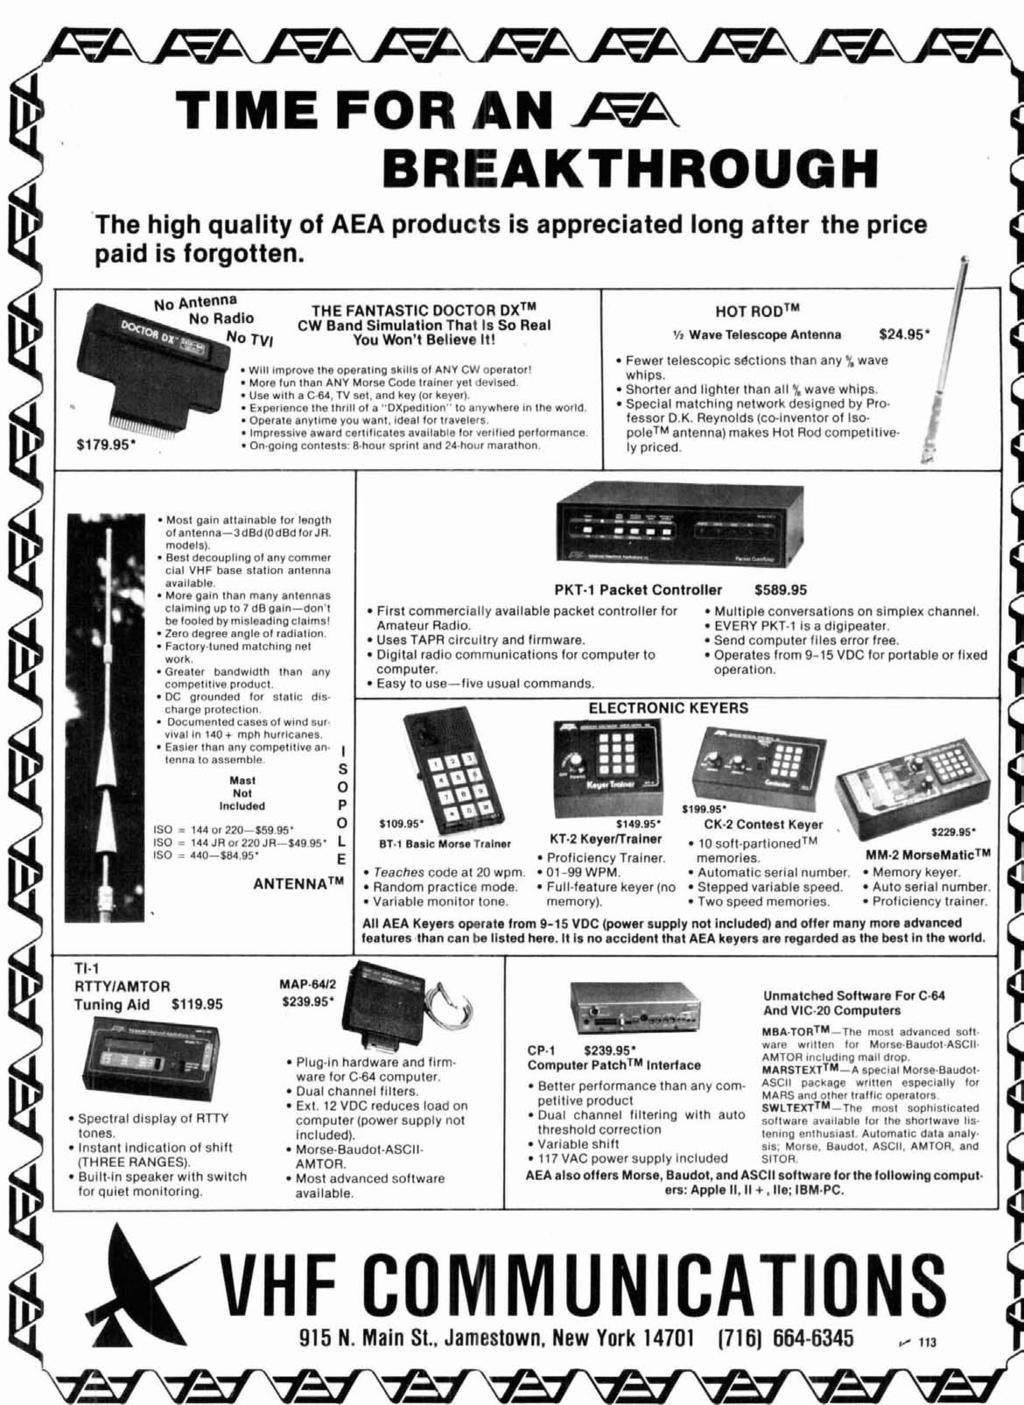 Reach Out To Your Friends Pdf Xl Data Hodrod Rp 100000 Tme For An Breakthrough The High Quality Of Aea Products Is Appreciated Long